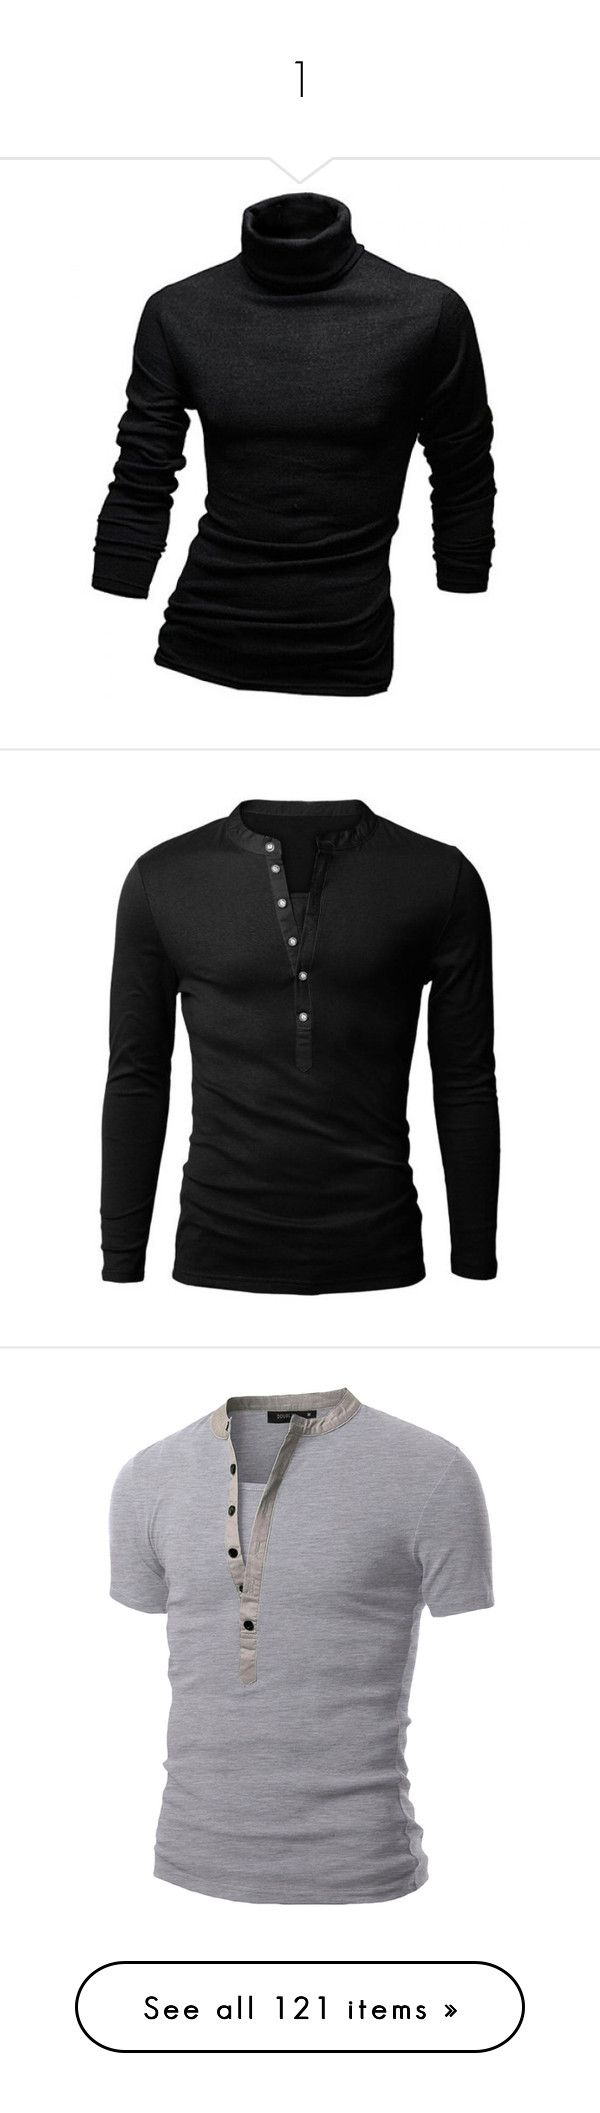 """1"" by bluekiller2002 ❤ liked on Polyvore featuring men's fashion, men's clothing, men's shirts, men's t-shirts, mens long sleeve turtleneck shirts, mens longsleeve shirts, mens turtleneck shirts, mens long sleeve t shirts, mens polo v neck t shirts and men"